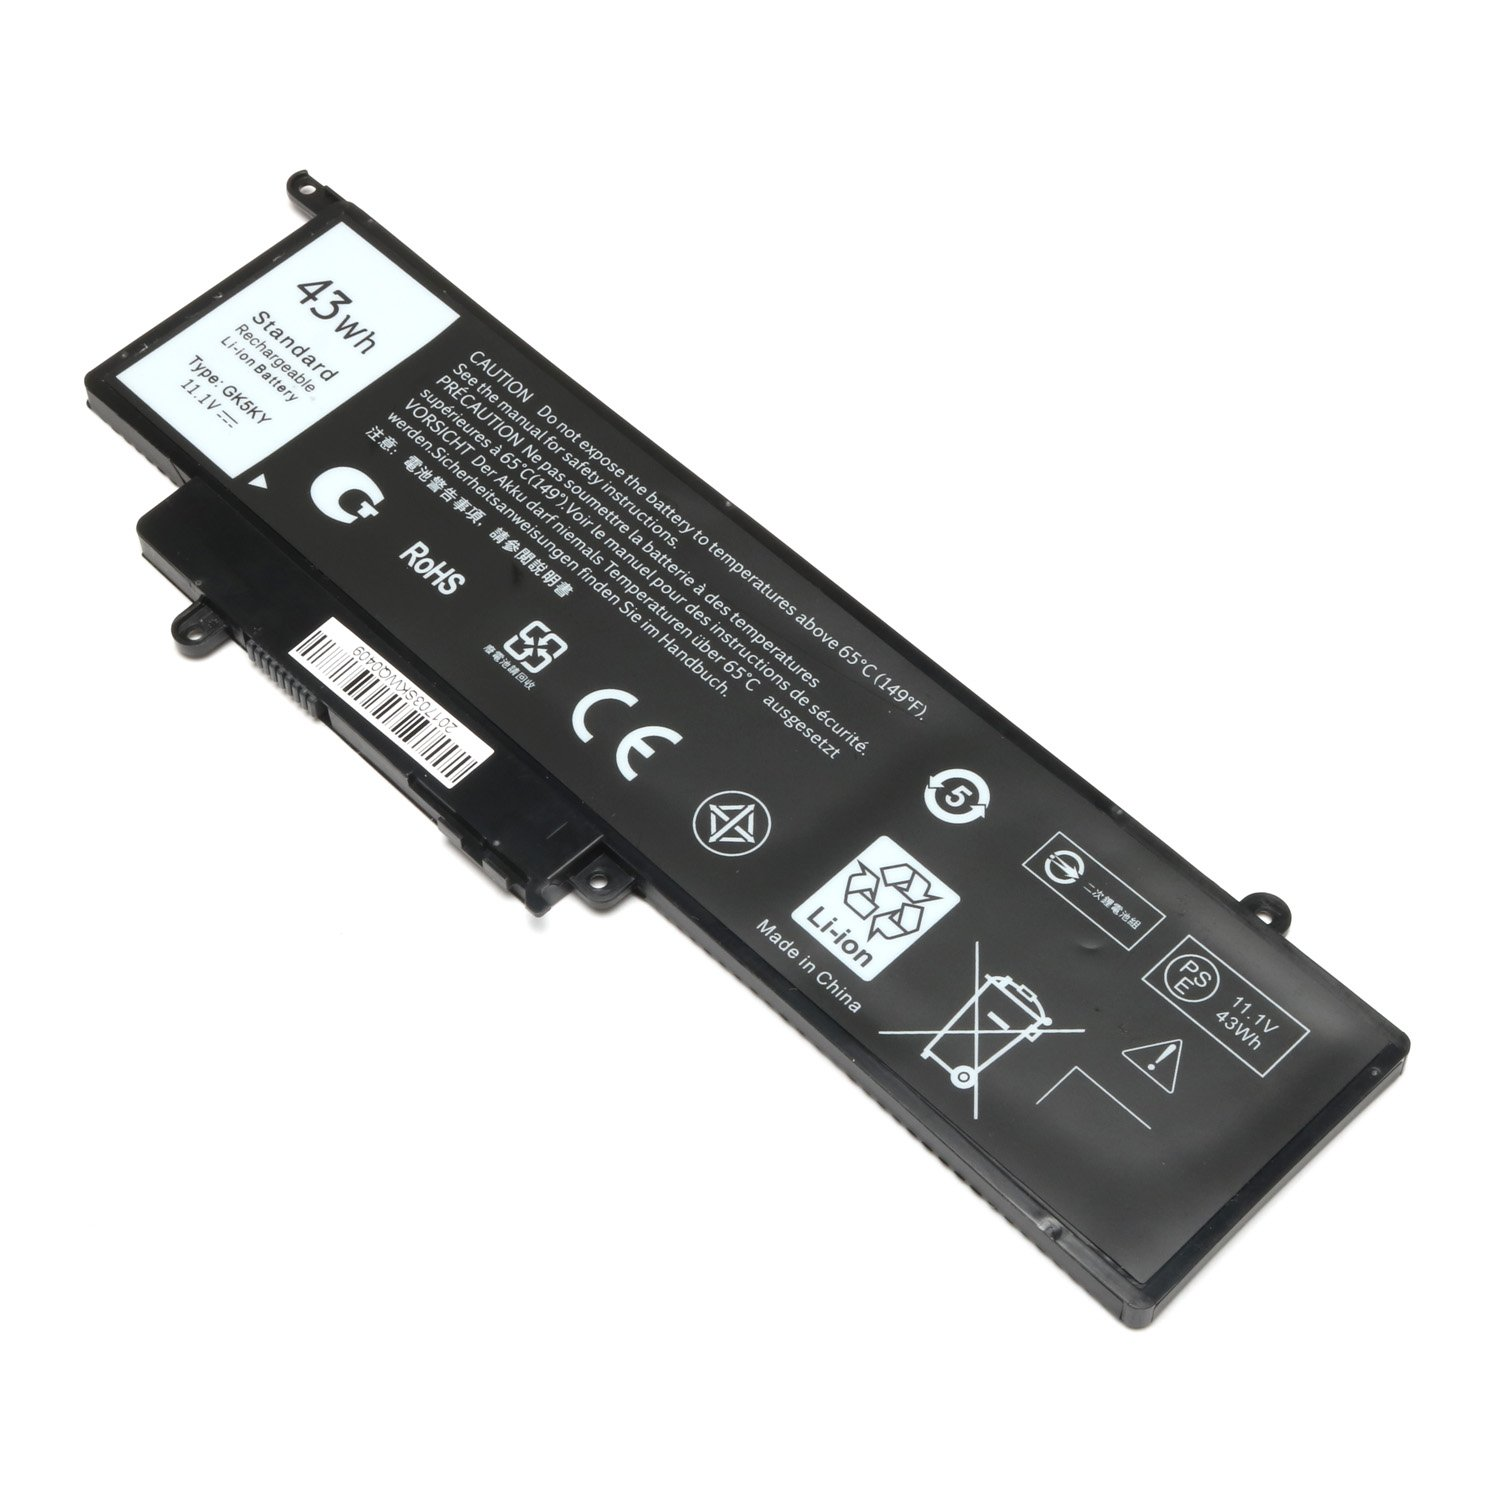 GK5KY New Laptop Battery for Dell Inspiron 11 3000 3147 3148 3152 13 7000 7353 7352 7347 7348 7359 7558 7568, Compatible P/N 04K8YH 92NCT 092NCT 4K8YH P20T Notebook PC by BULL-TECH (Image #5)